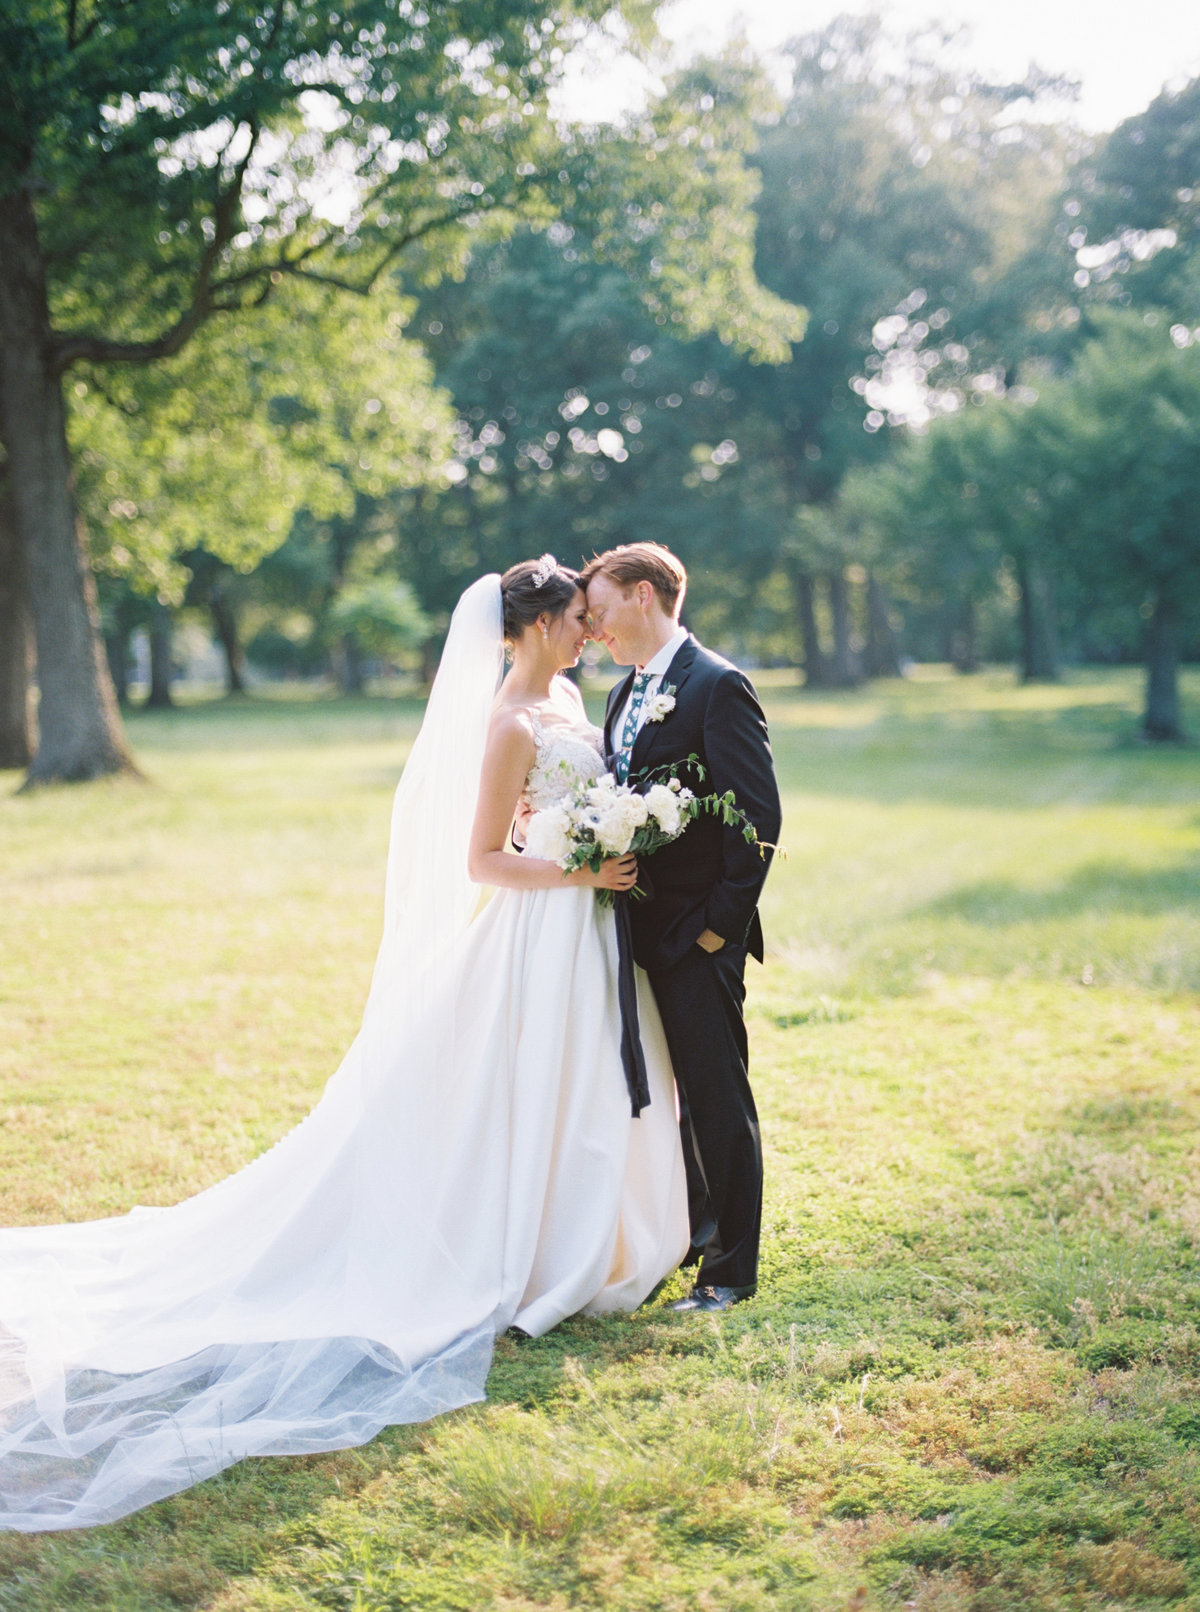 Soft and romantic wedding in Woodbridge and Fort Belvoir Officers Club.